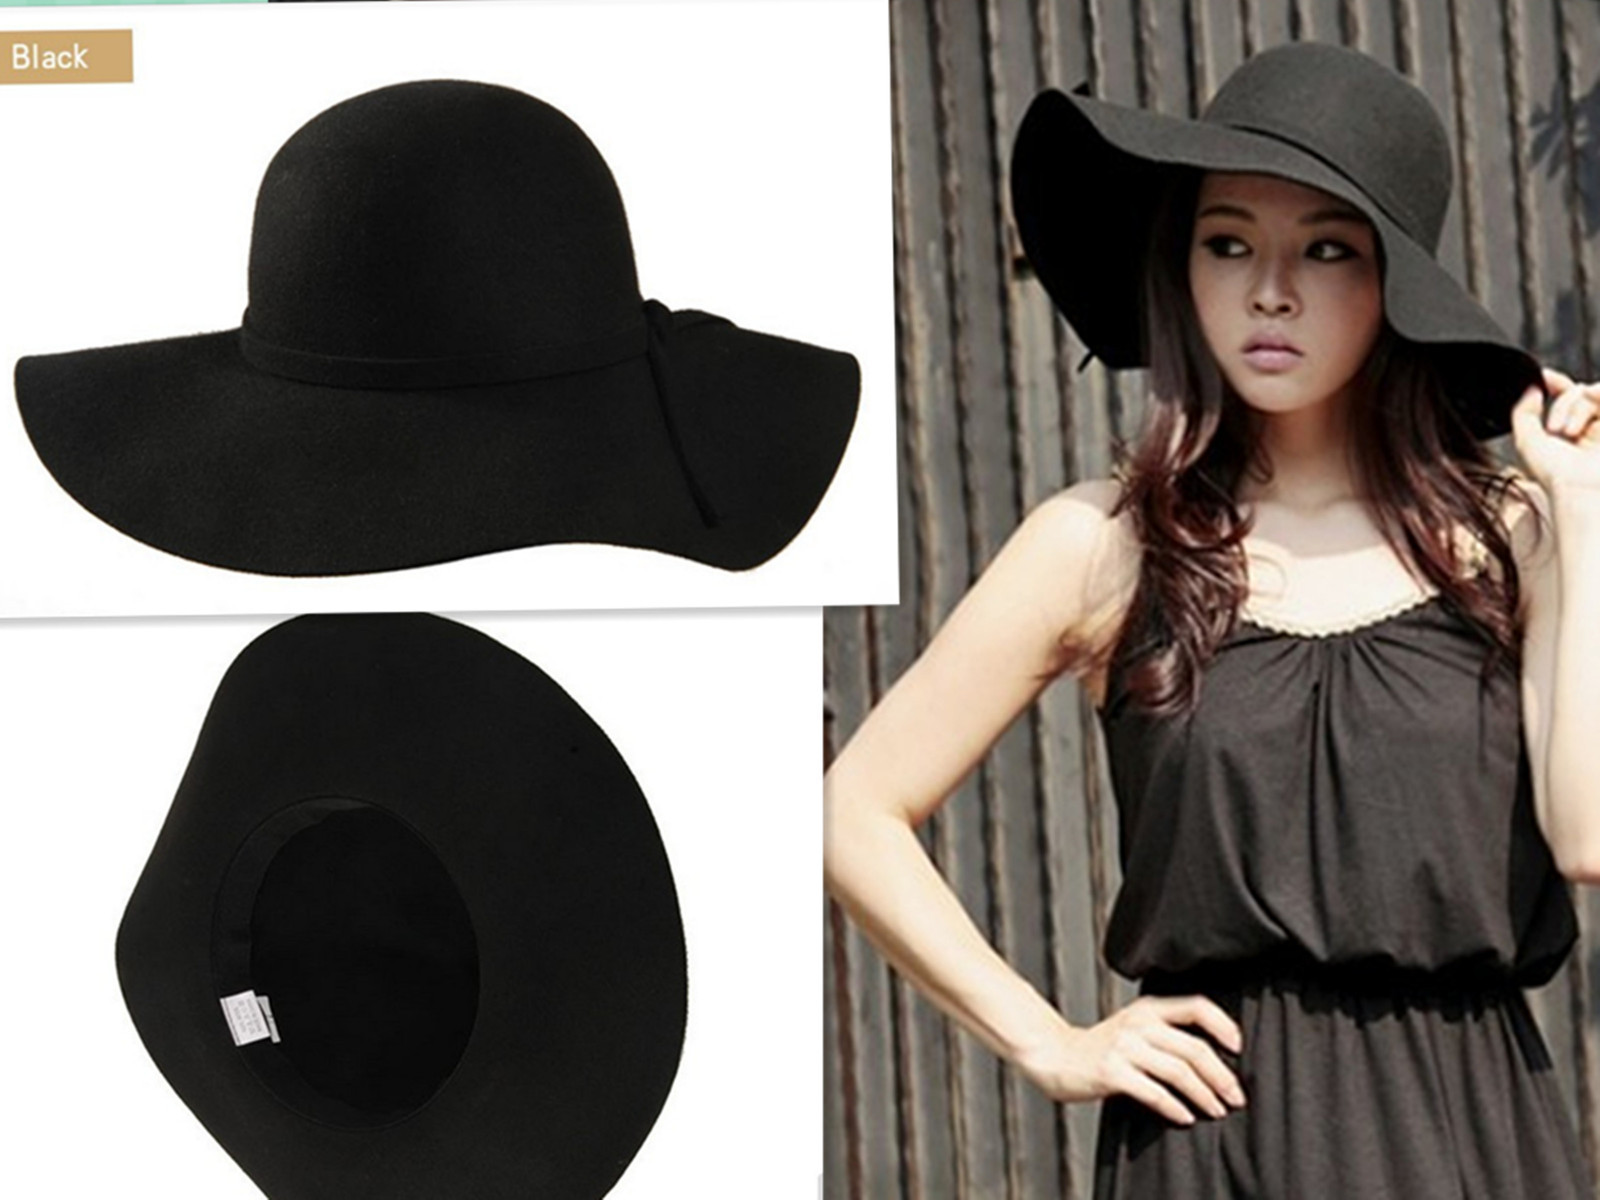 c0c3fd87c8c Hot Vintage Lady Women Wide Brim Bowler Fedora Wool Felt Hat ...